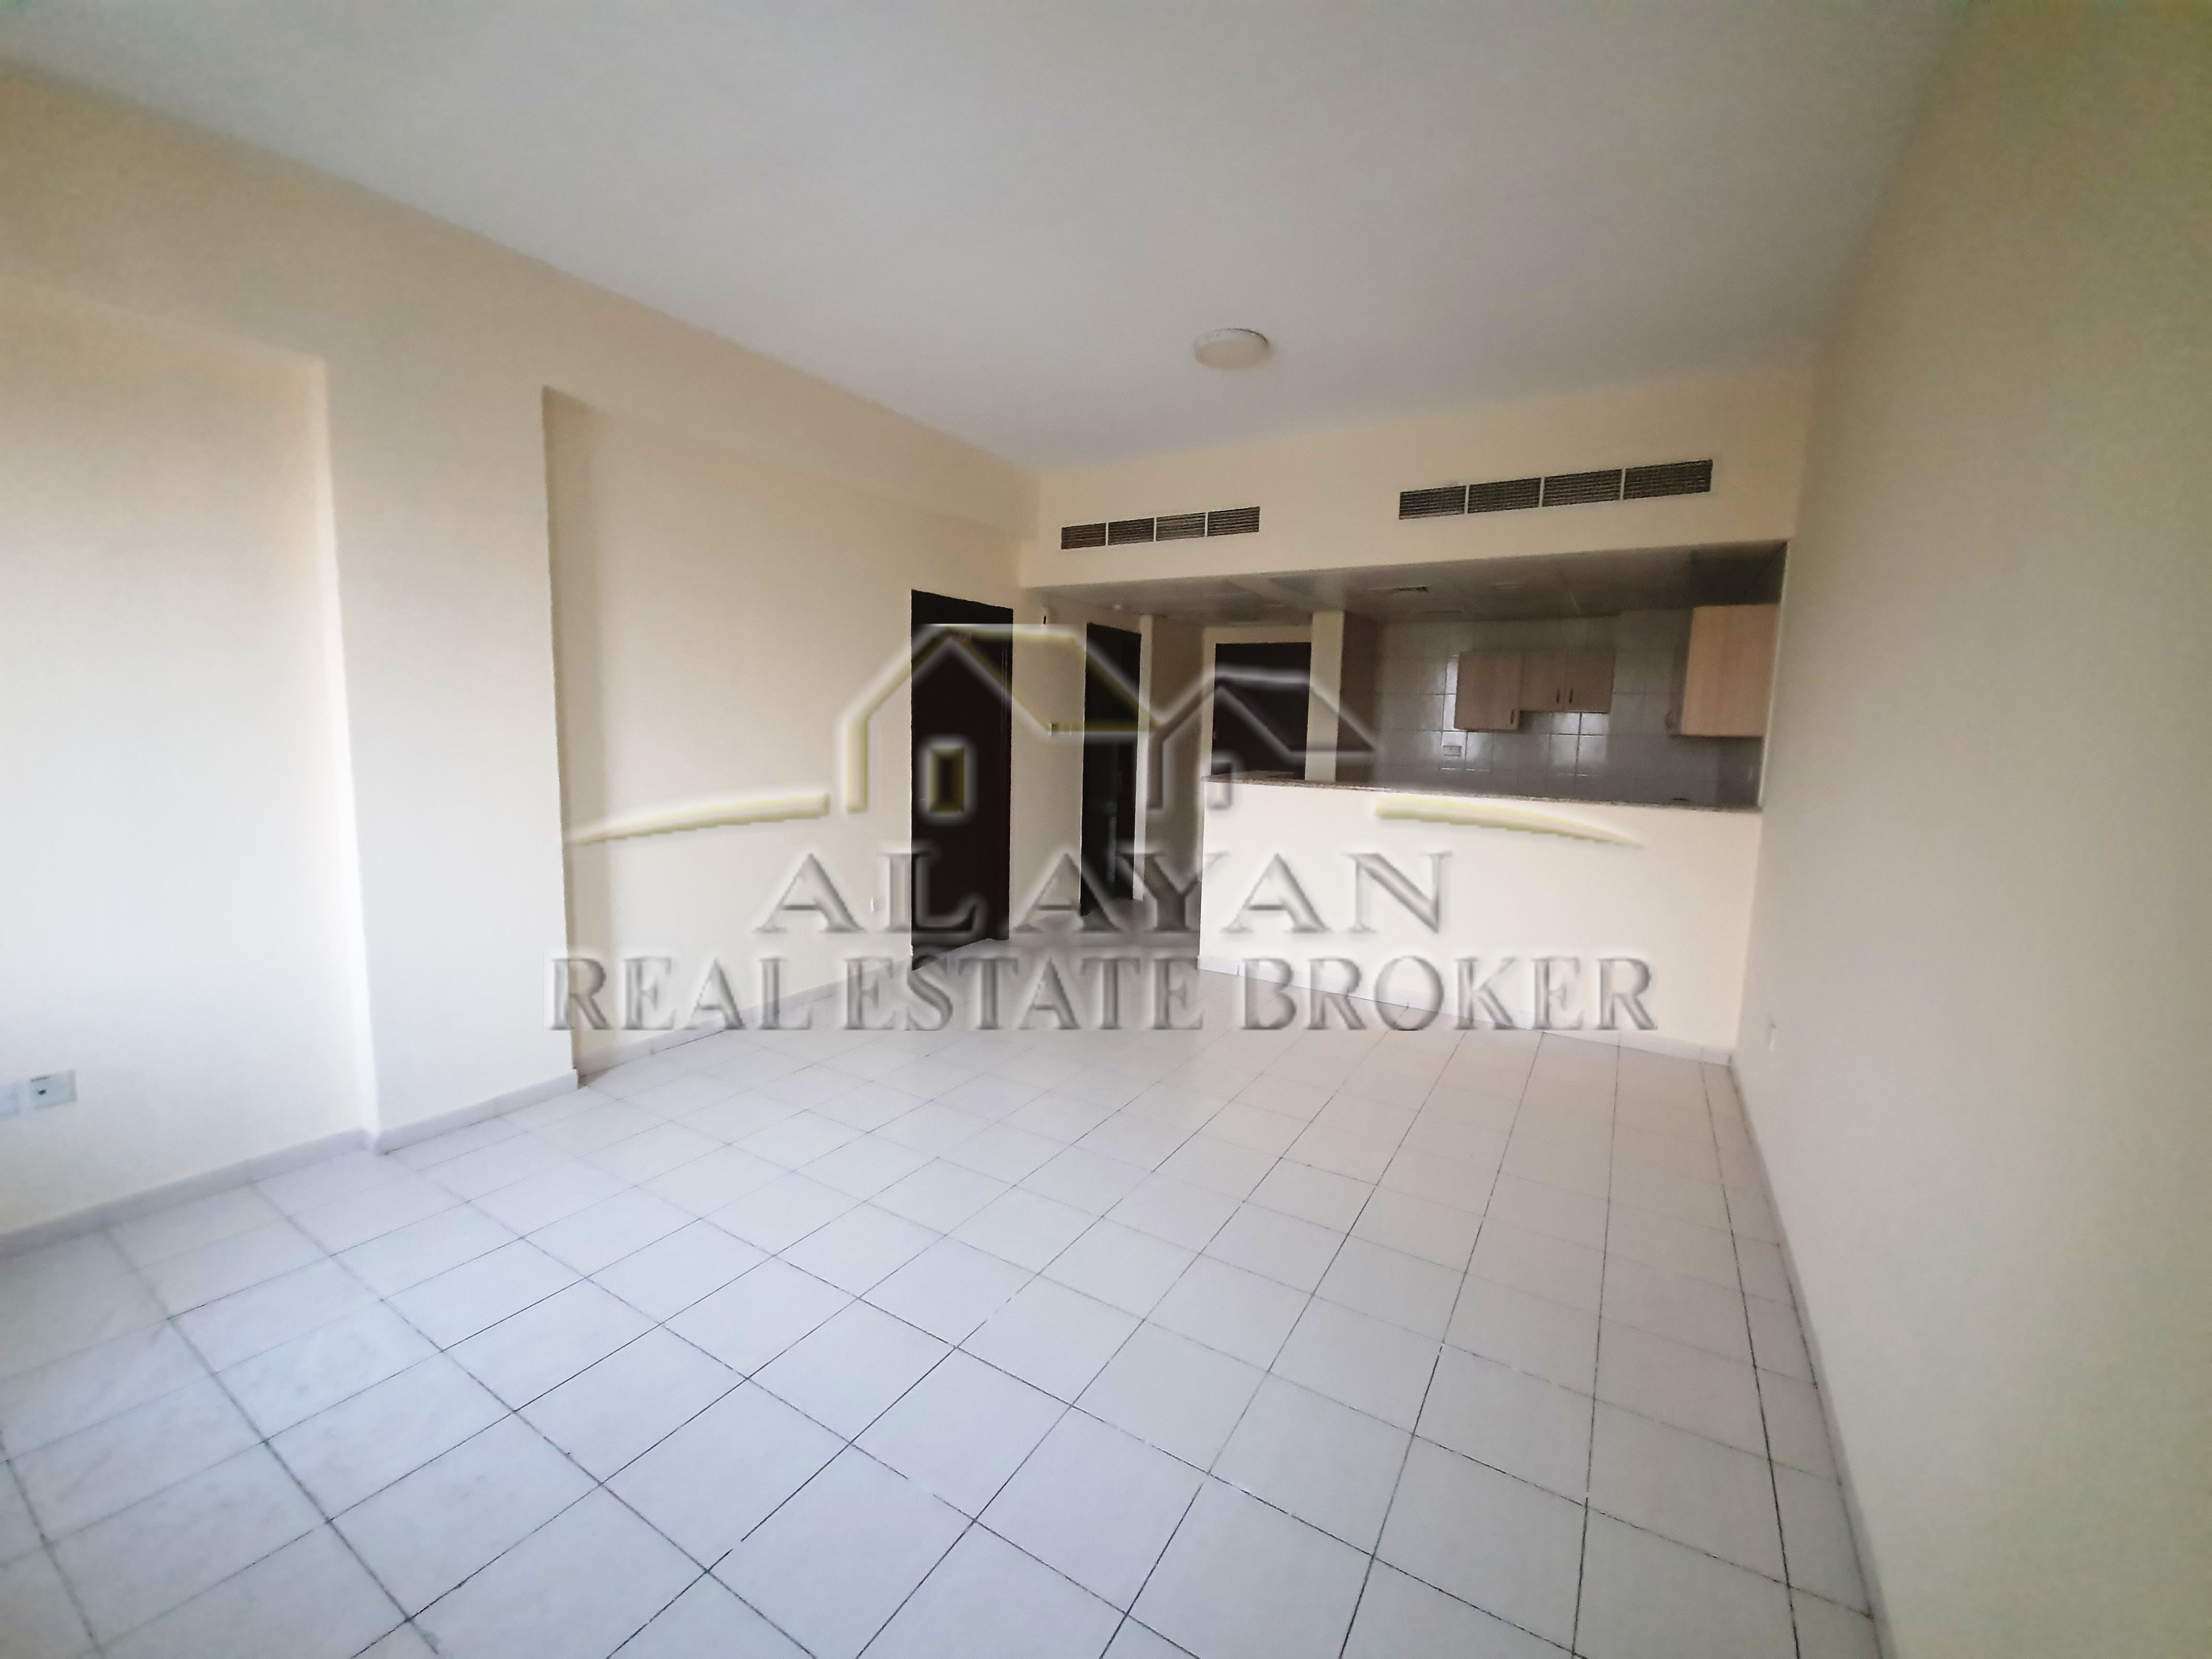 Good Offer : One Bedroom with Balcony for Rent in Greece Cluster @ 21,000/-